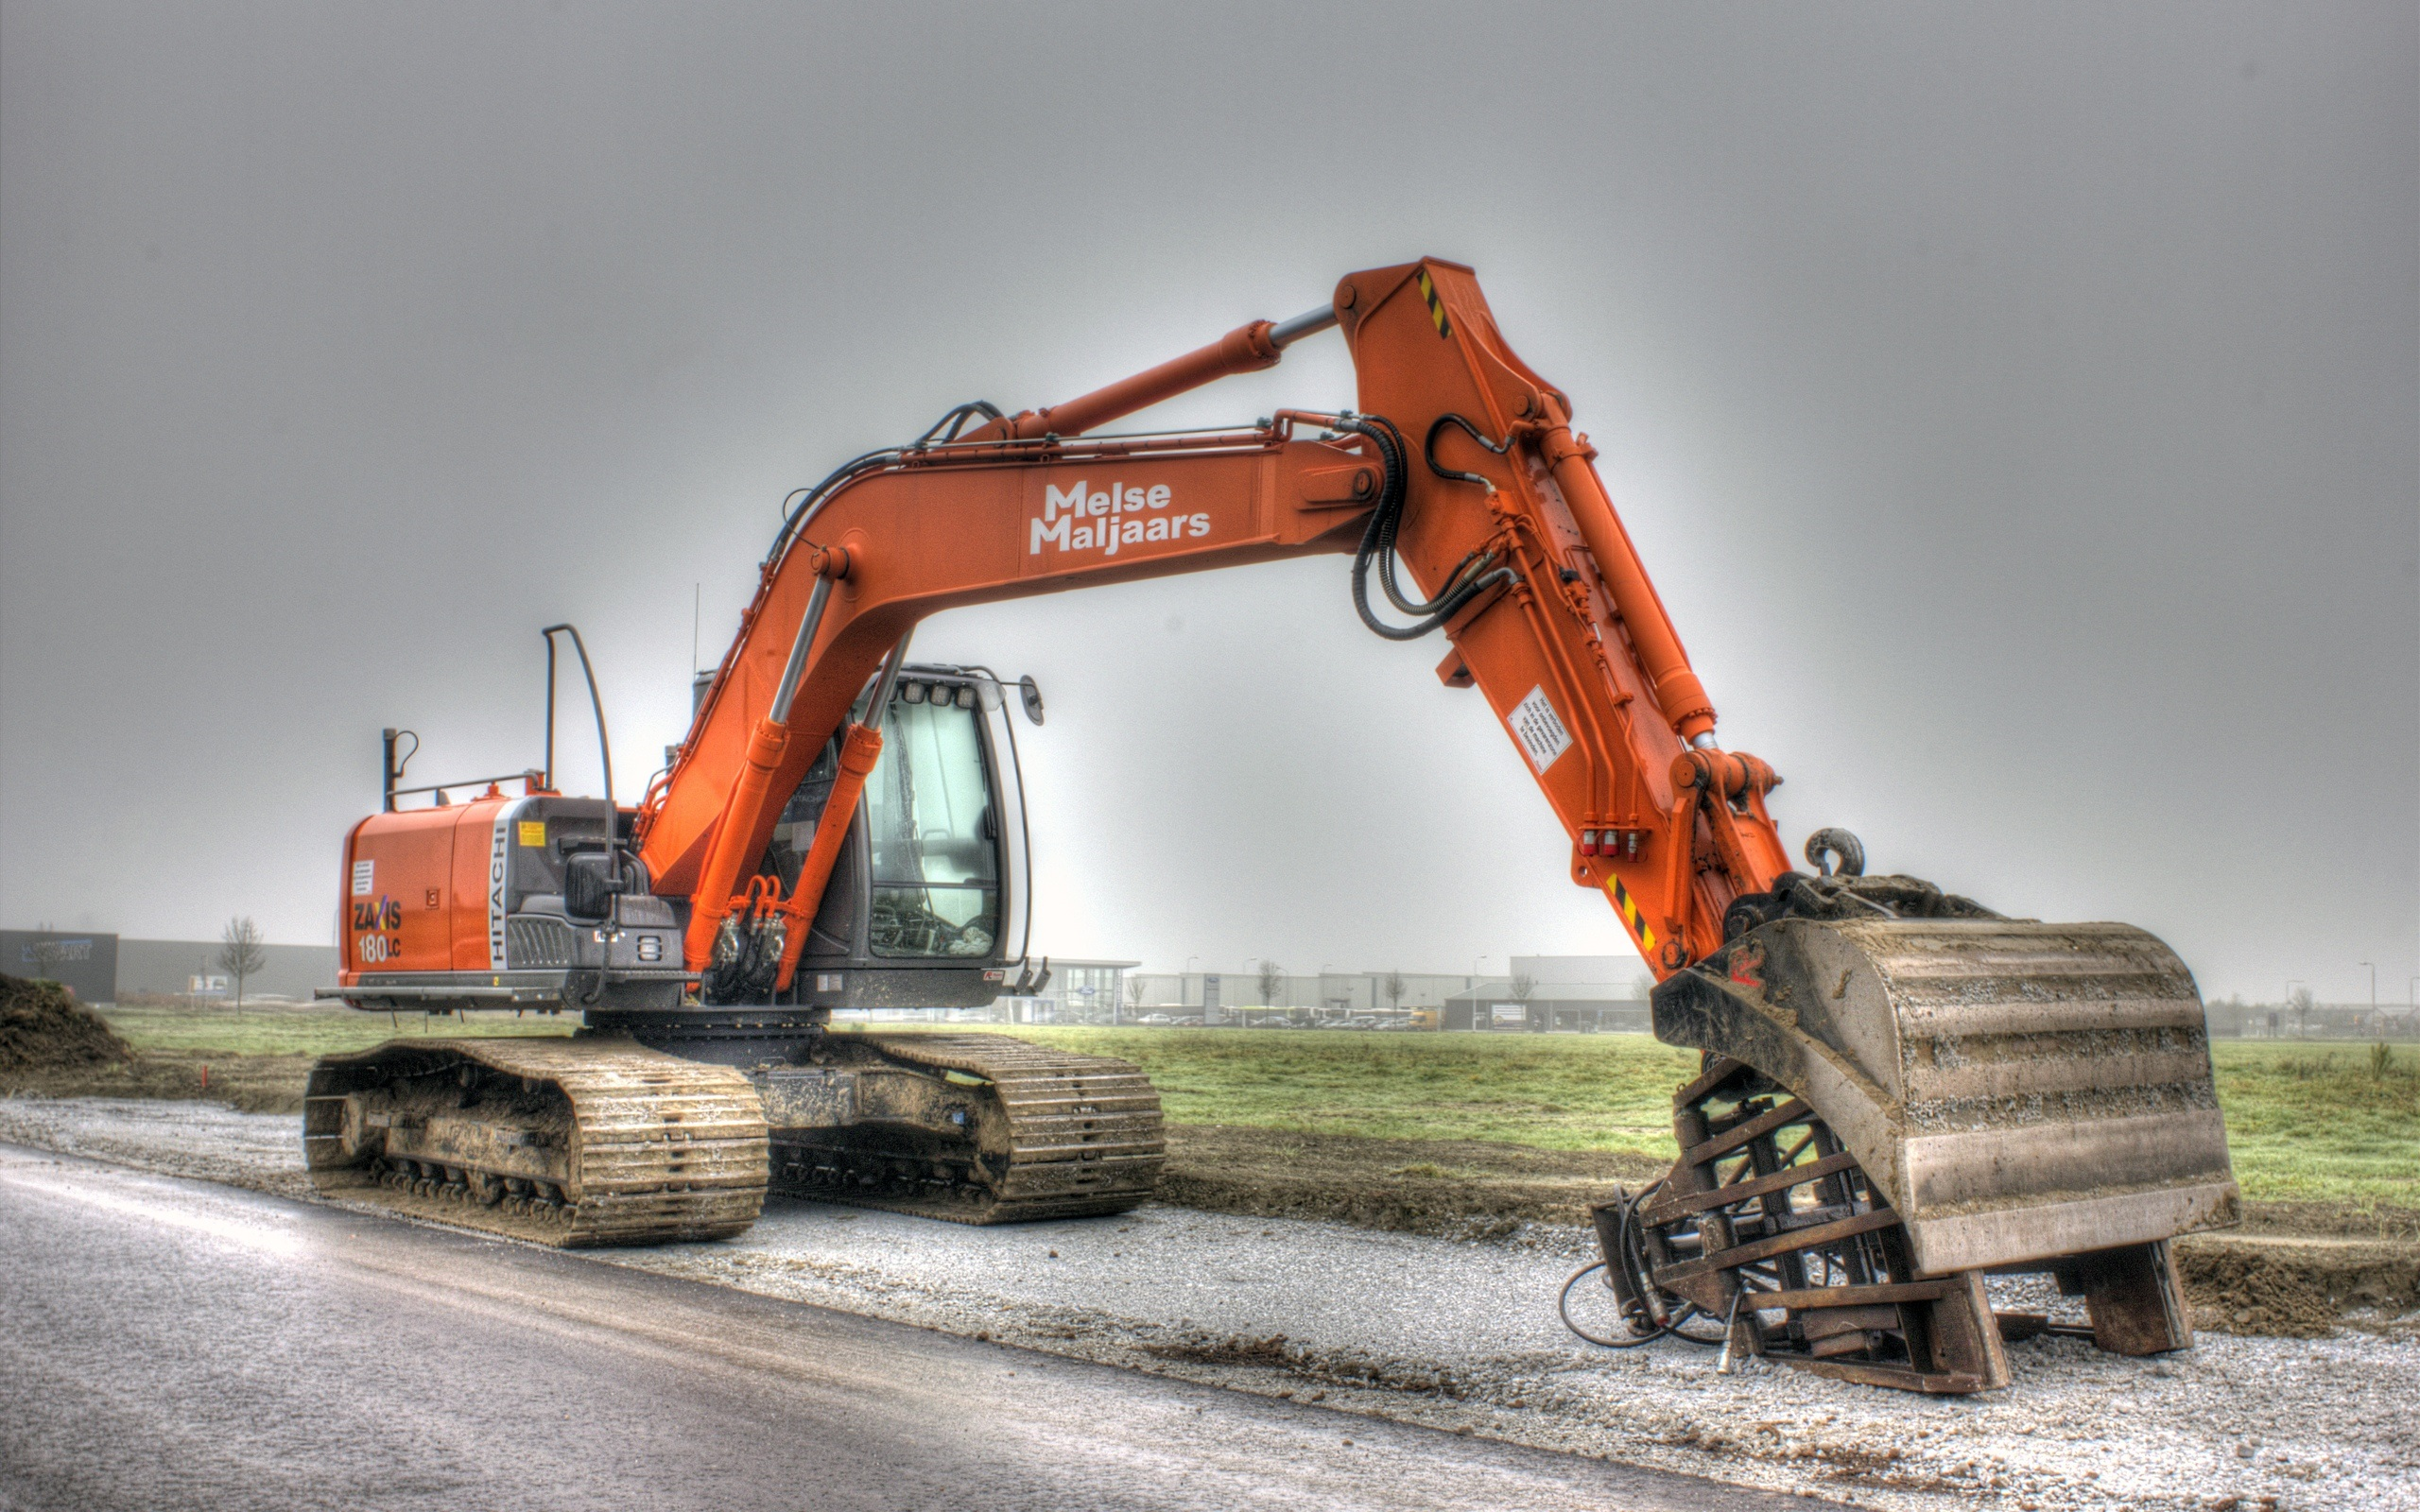 Used Cars Phoenix >> Download Wallpaper 2560x1600 Hitachi excavator, construction machinery HD Background